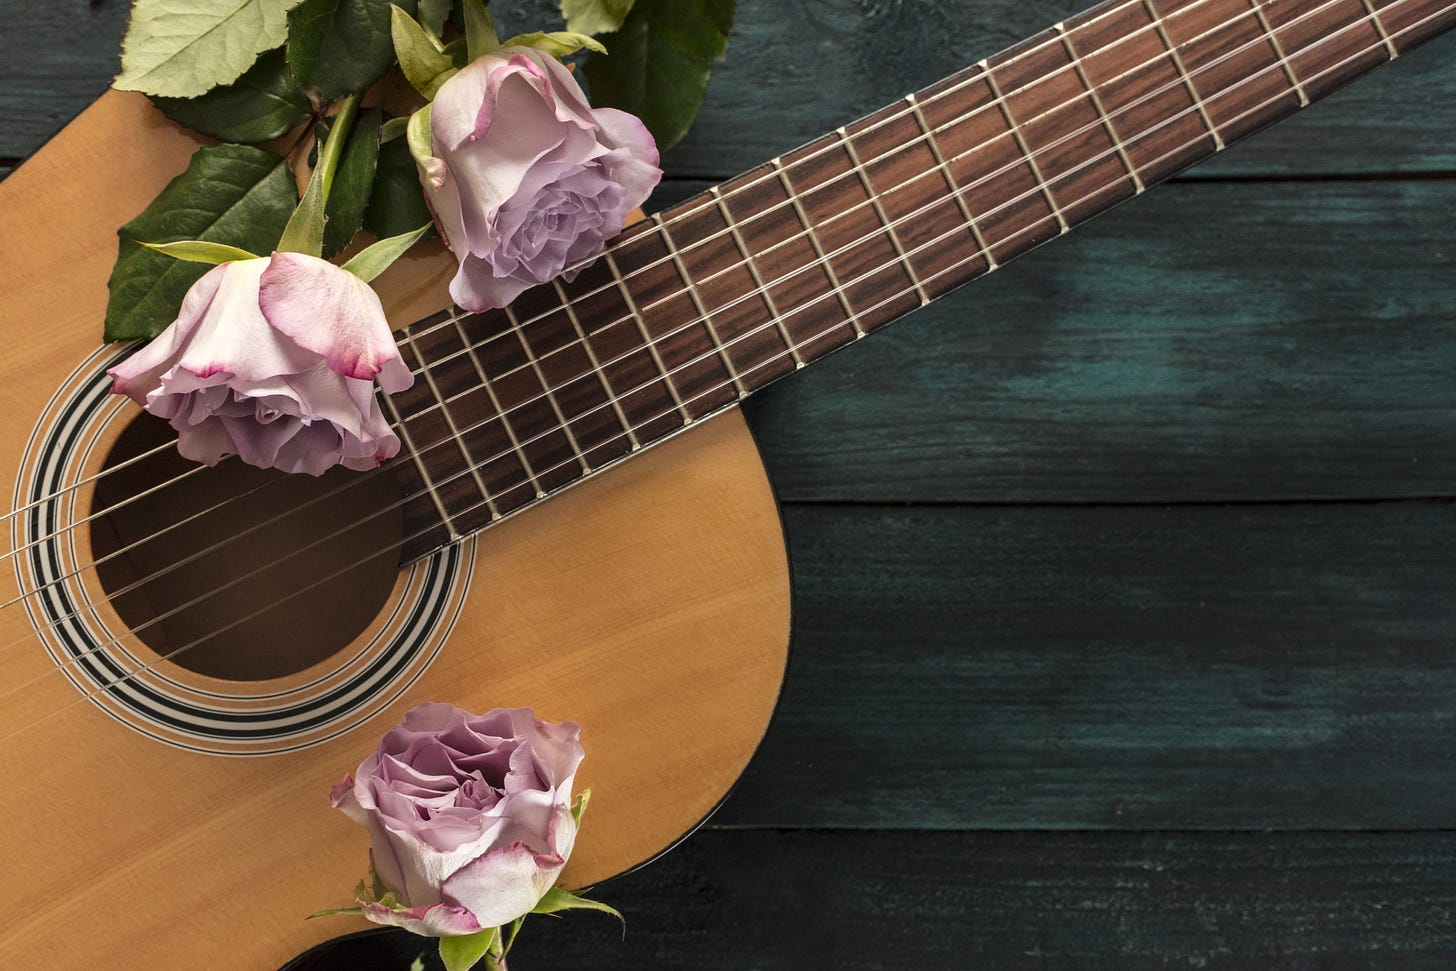 Image of a guitar on a wooden floor with pink roses